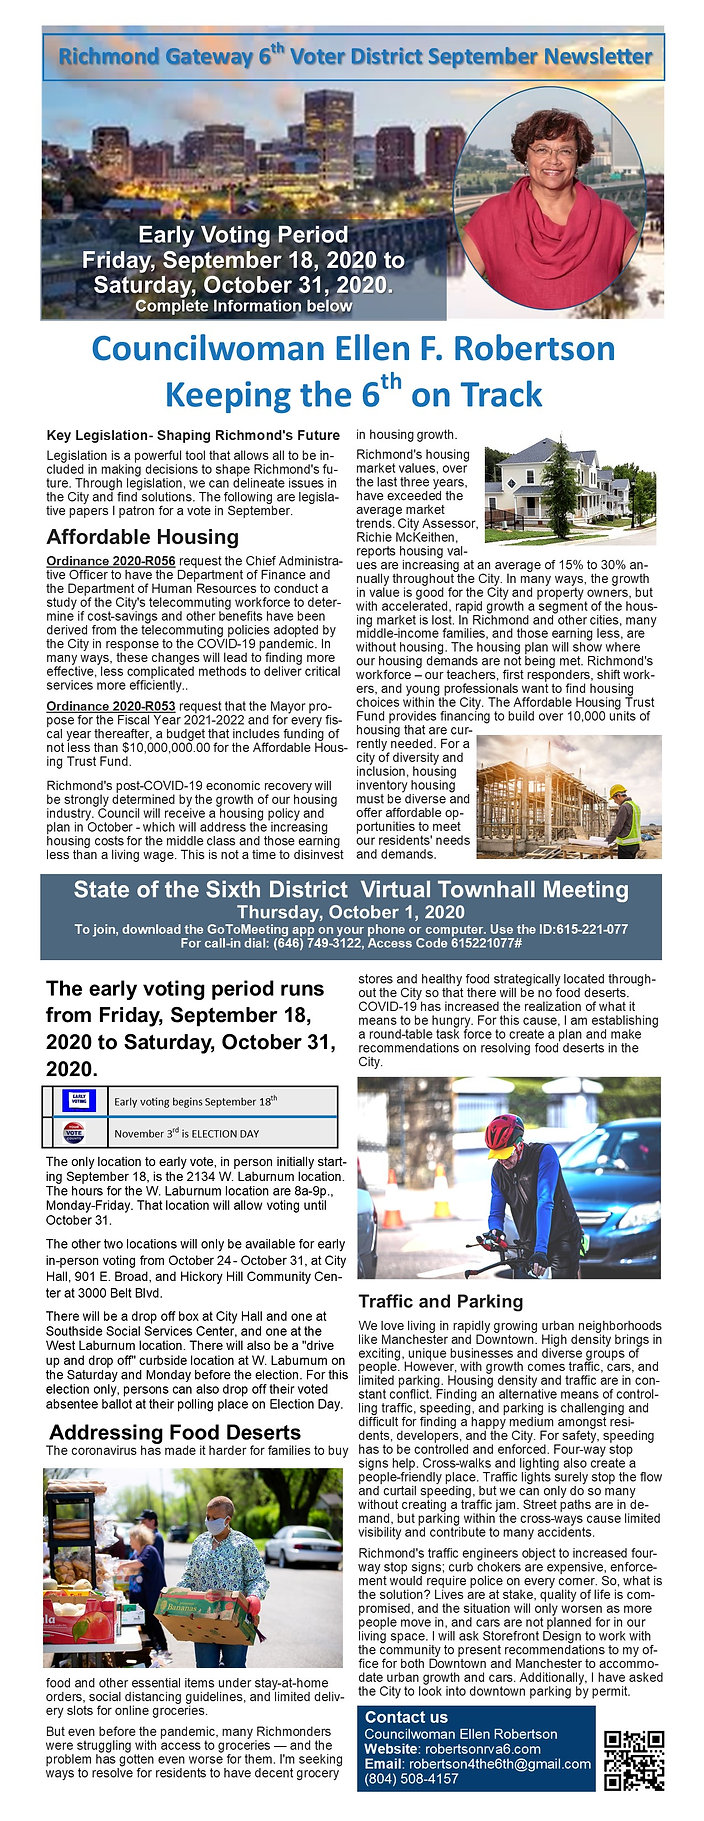 September Newsletter 2020.jpg